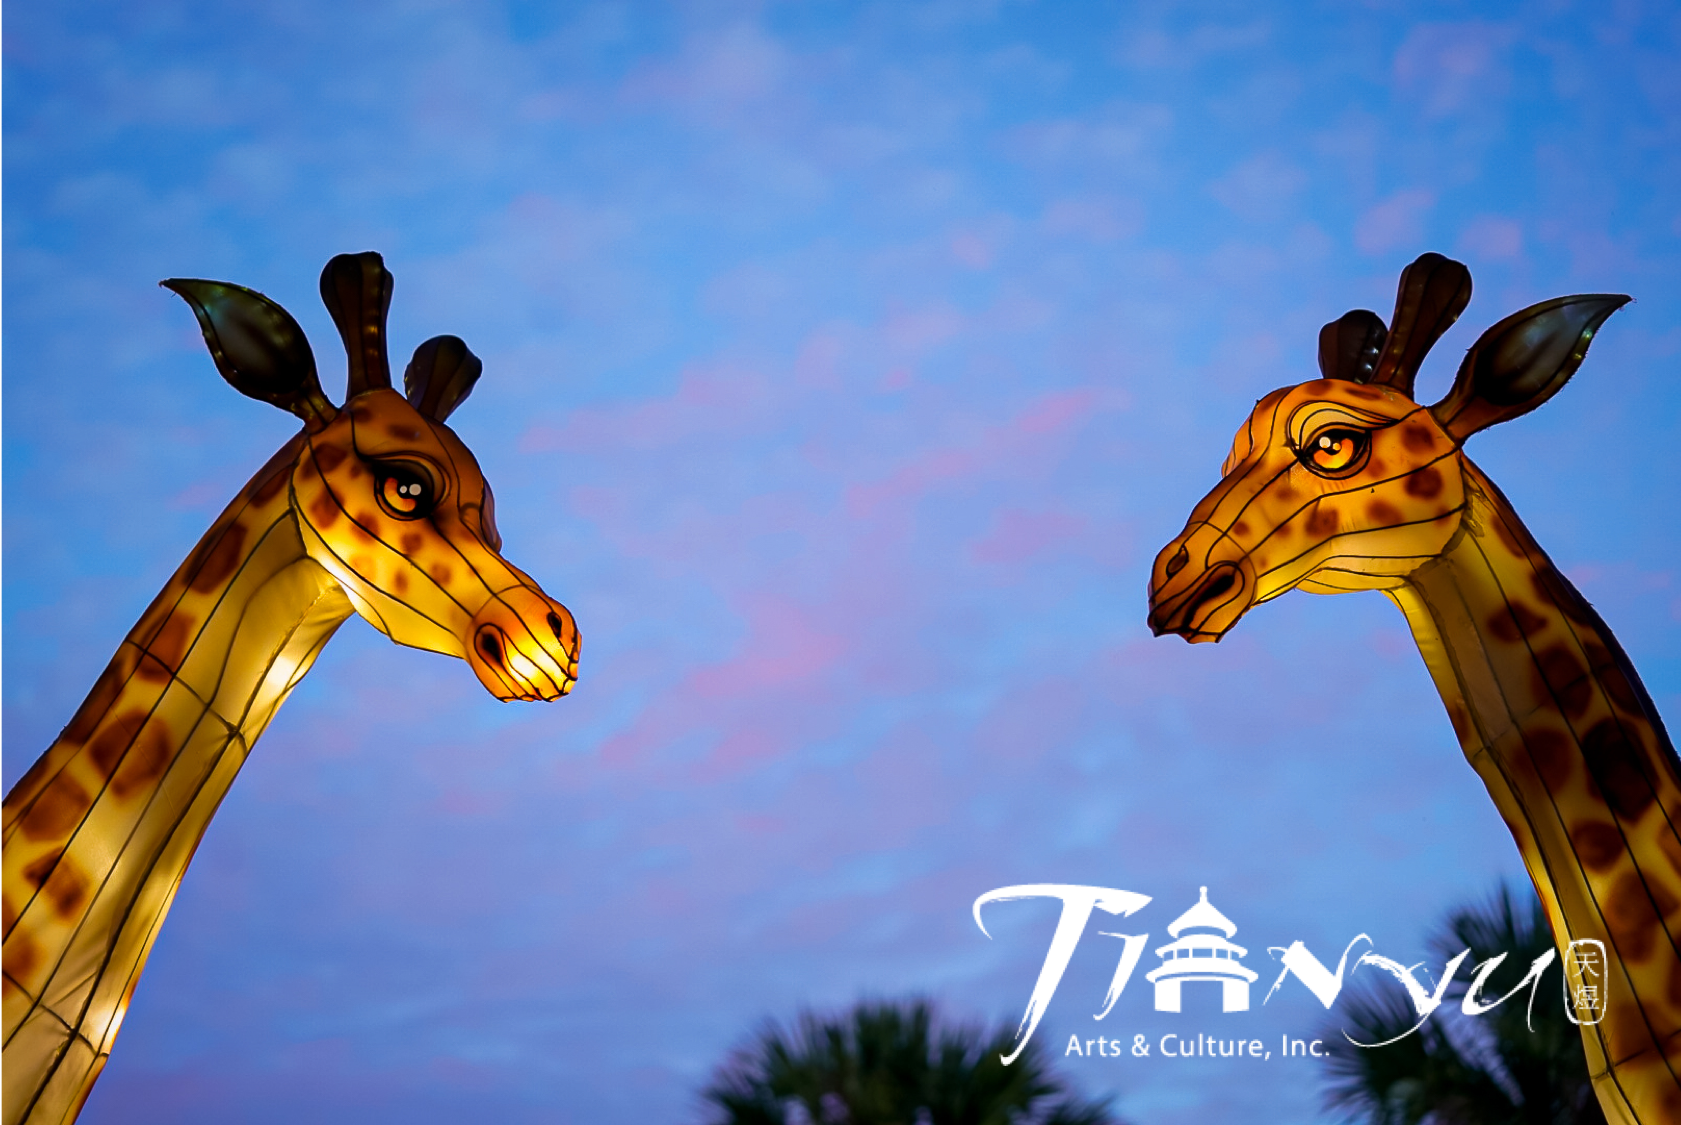 Two Chinese lantern giraffes sit in the sunset